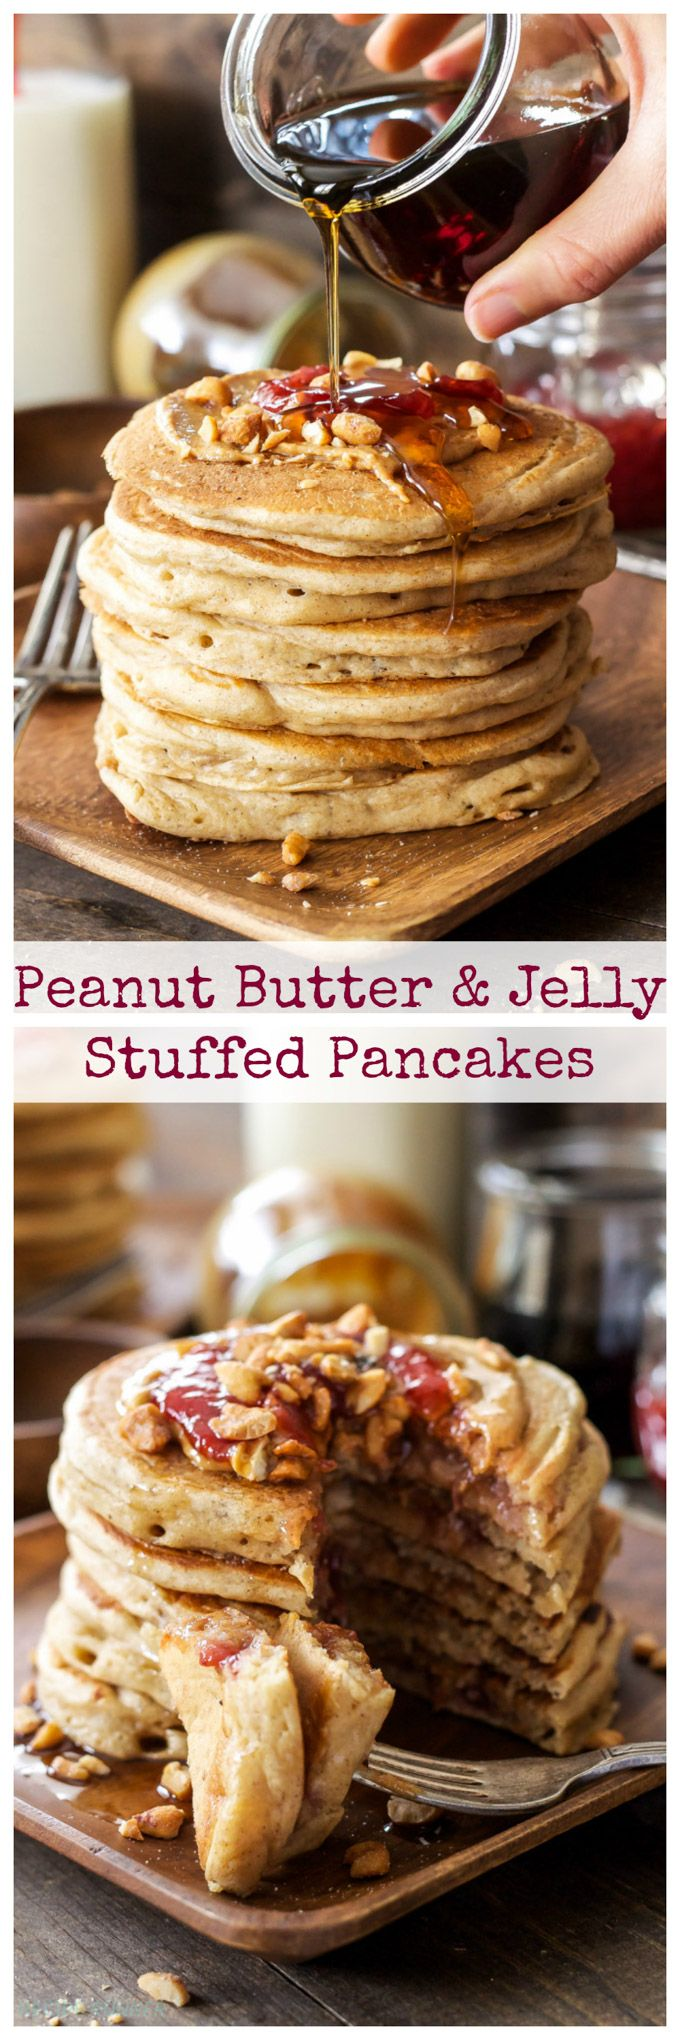 Peanut Butter & Jelly Stuffed Pancakes | Whole wheat pancakes stuffed ...